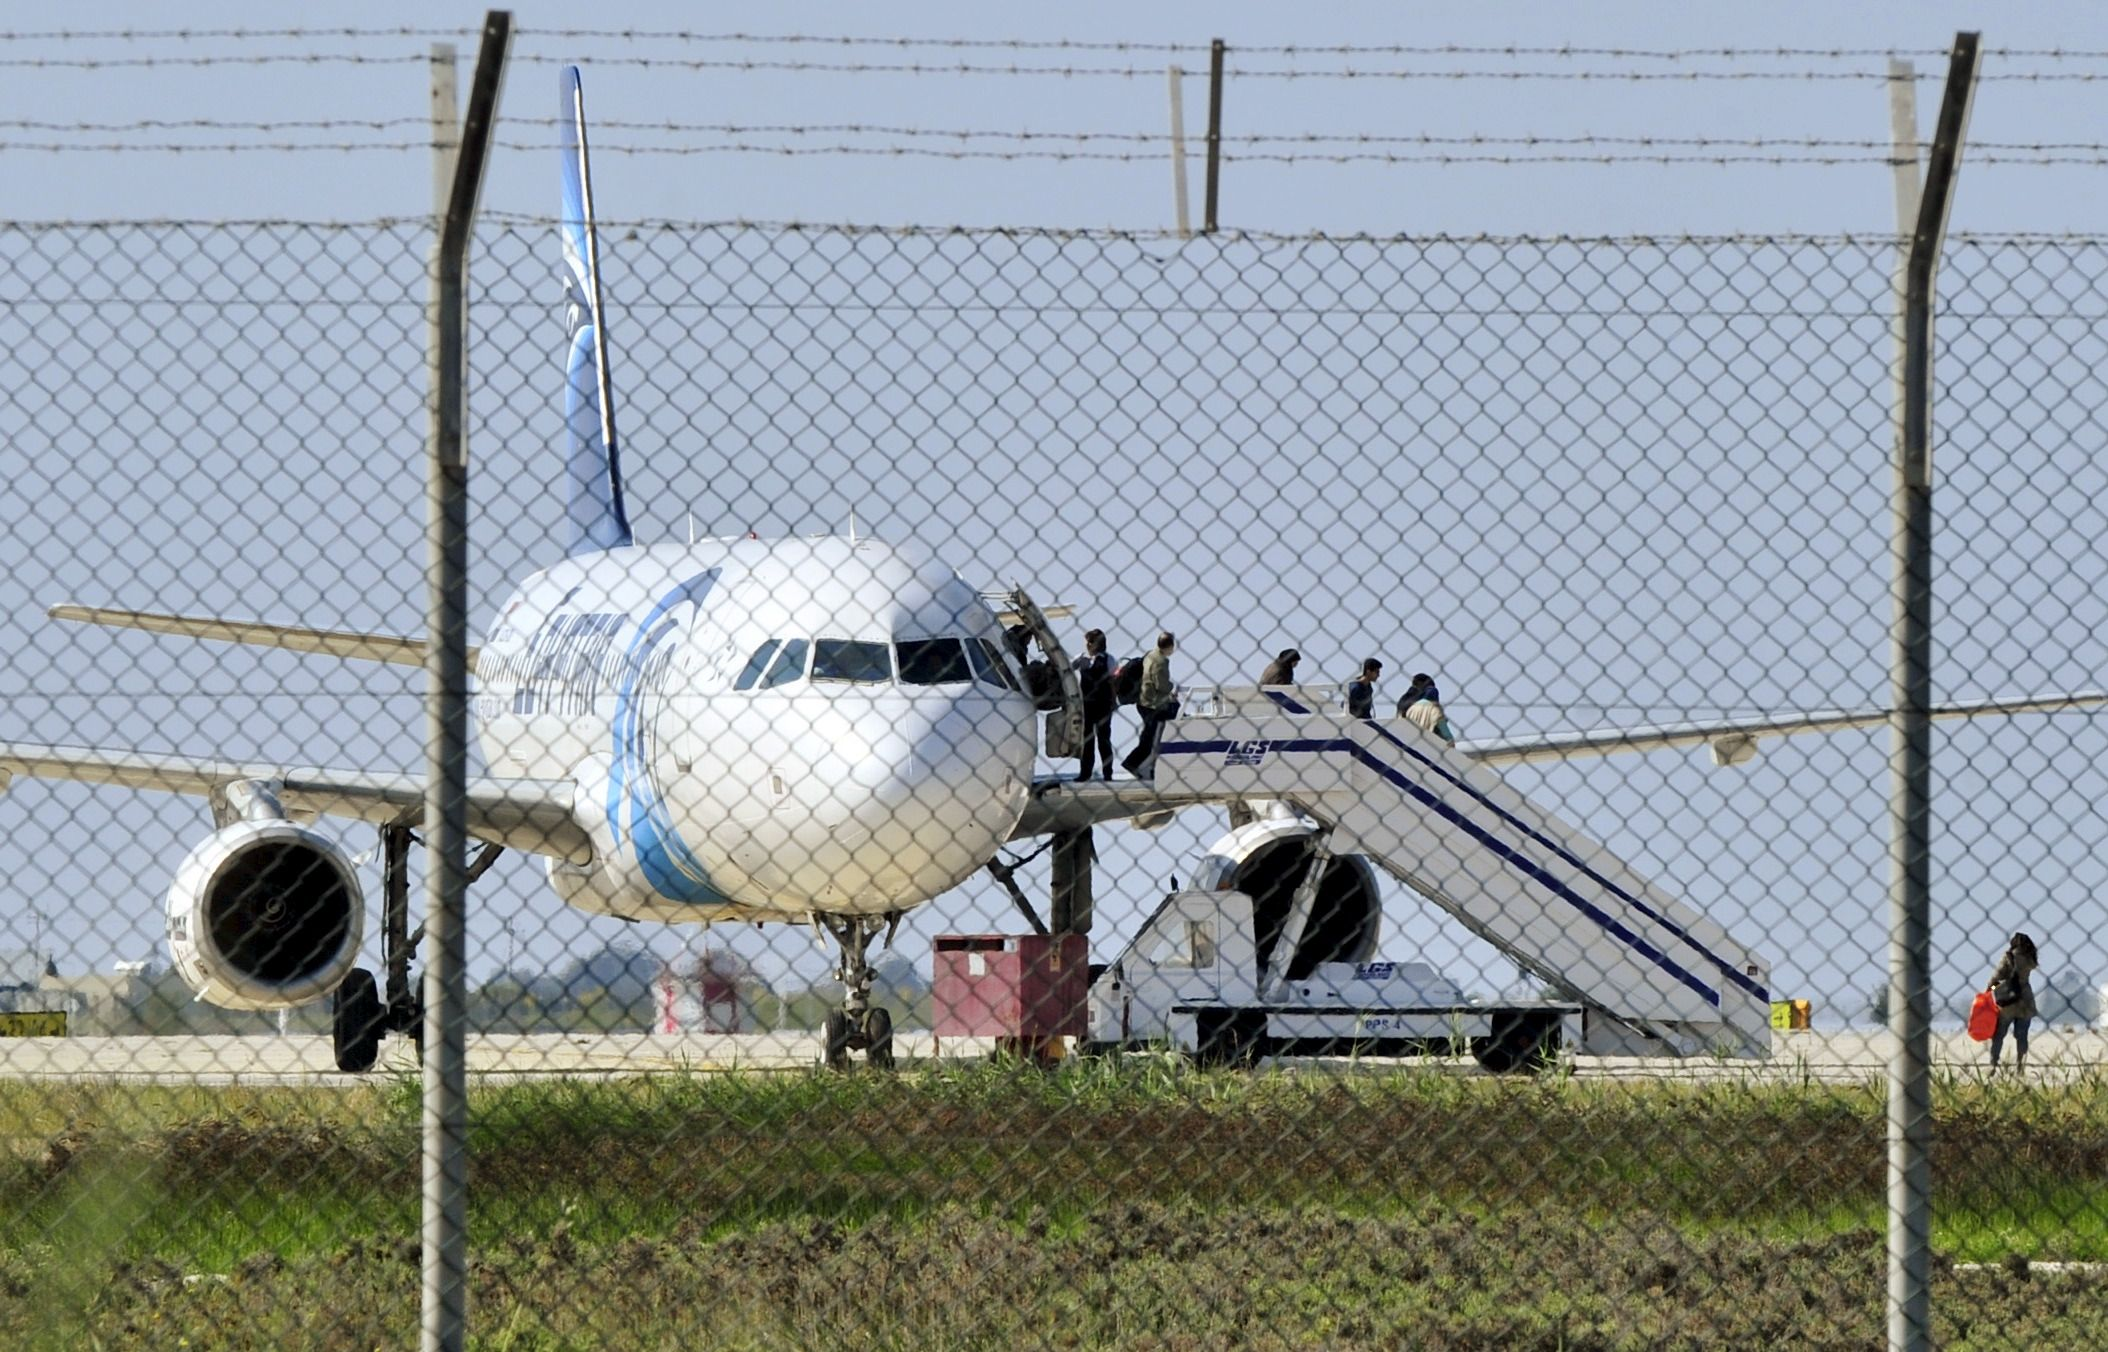 Cyprus Egypt Air Plane Hijacking